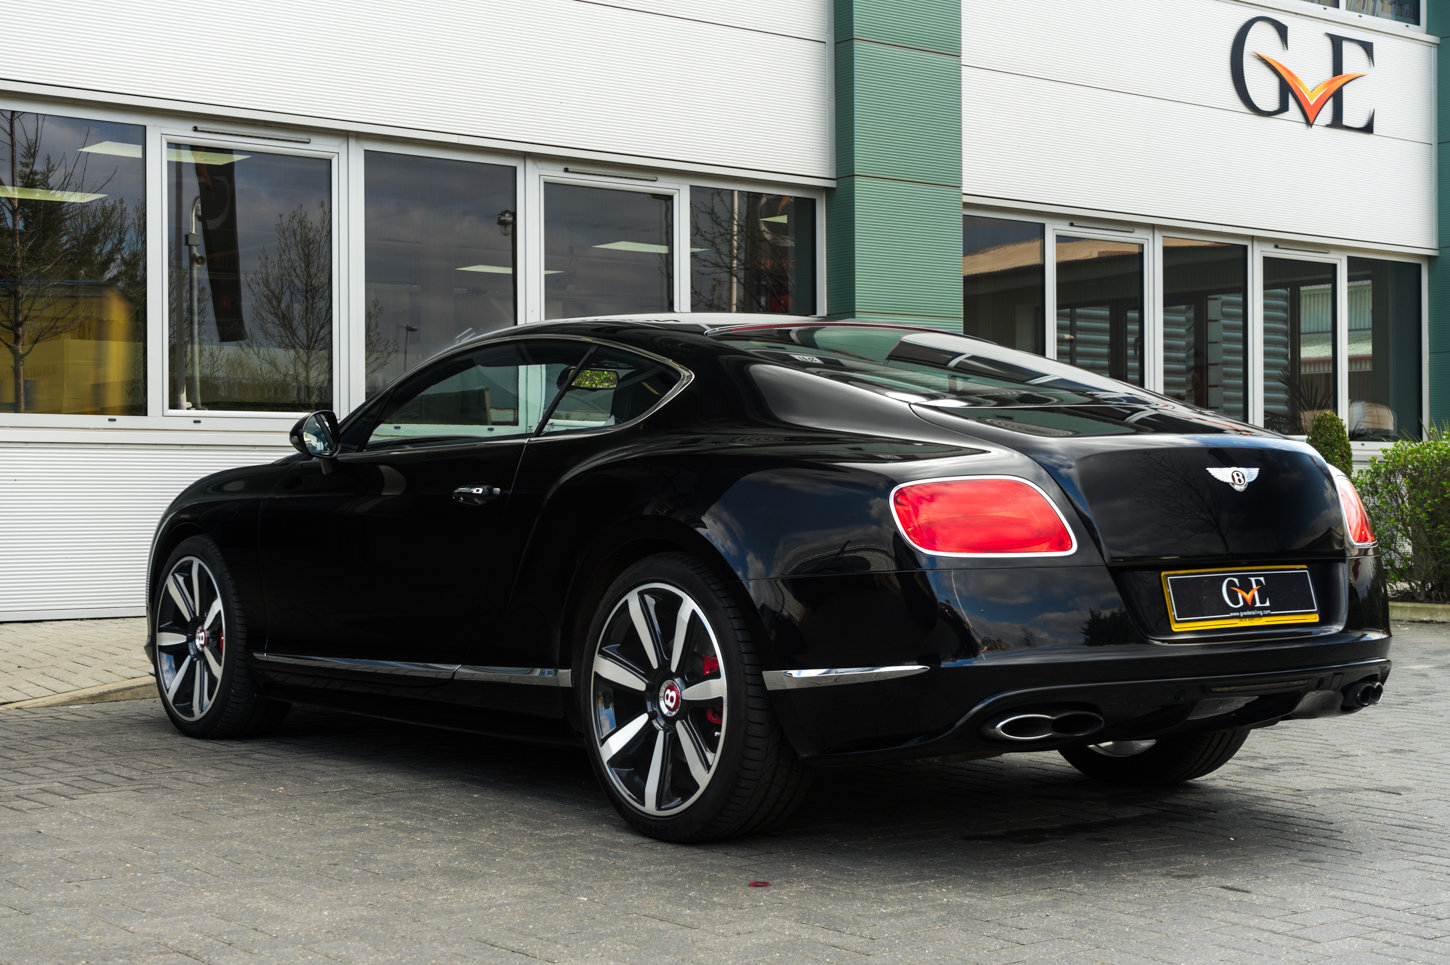 Bentley  Continental GT S Black 2014 /64  For Sale (picture 2 of 6)